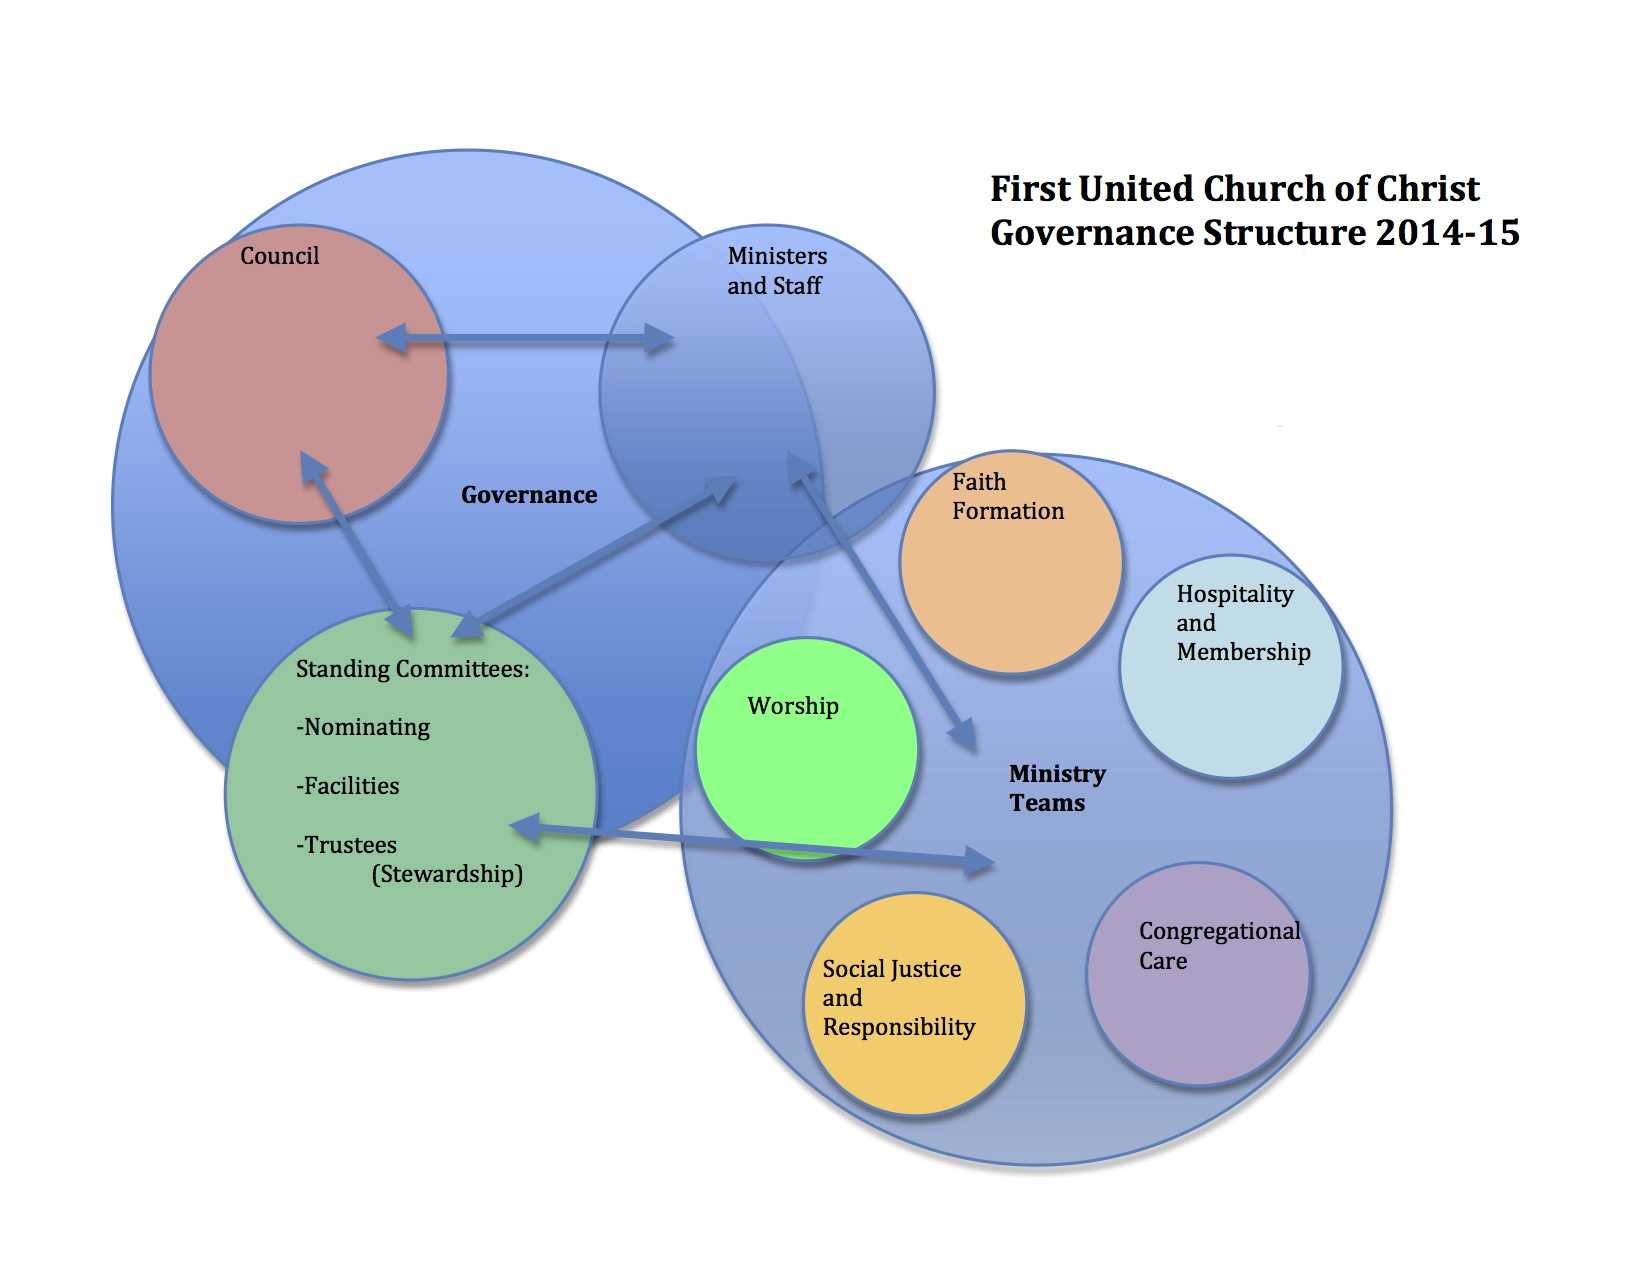 governance model 2014-15